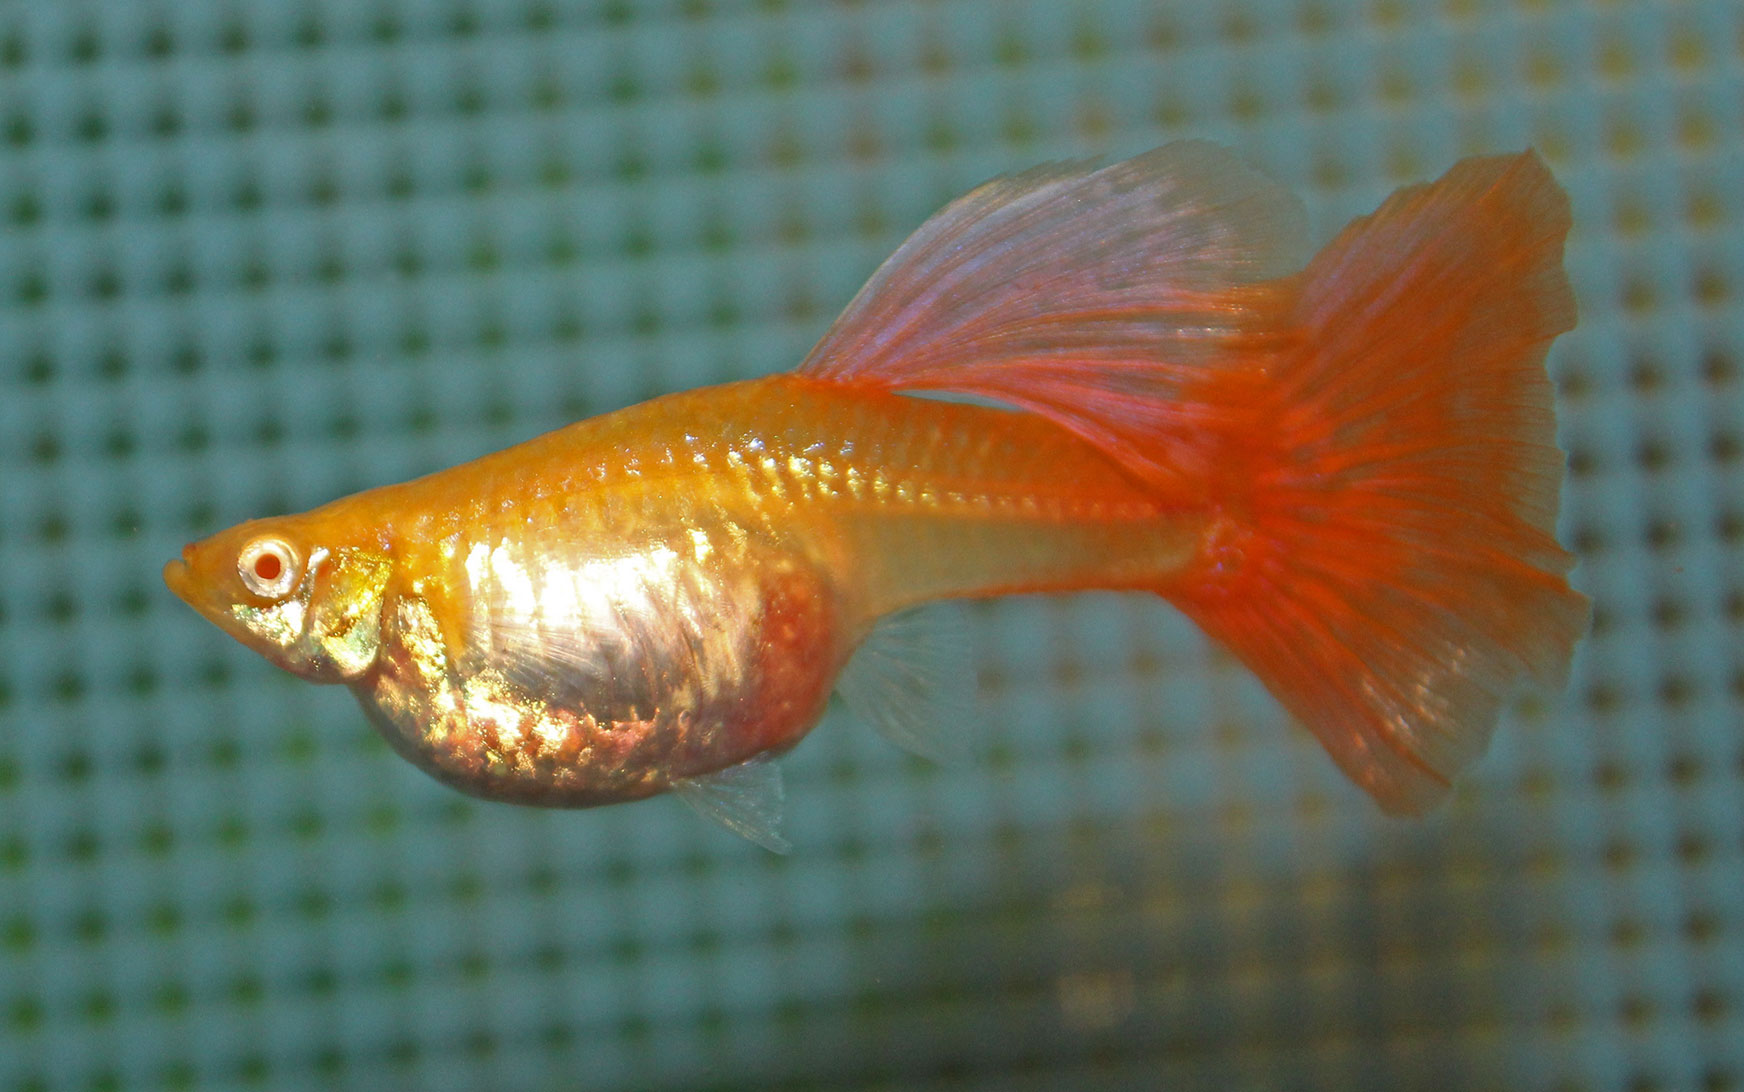 A red albino female guppy terry aley 39 s guppy site for Fish dream meaning pregnancy